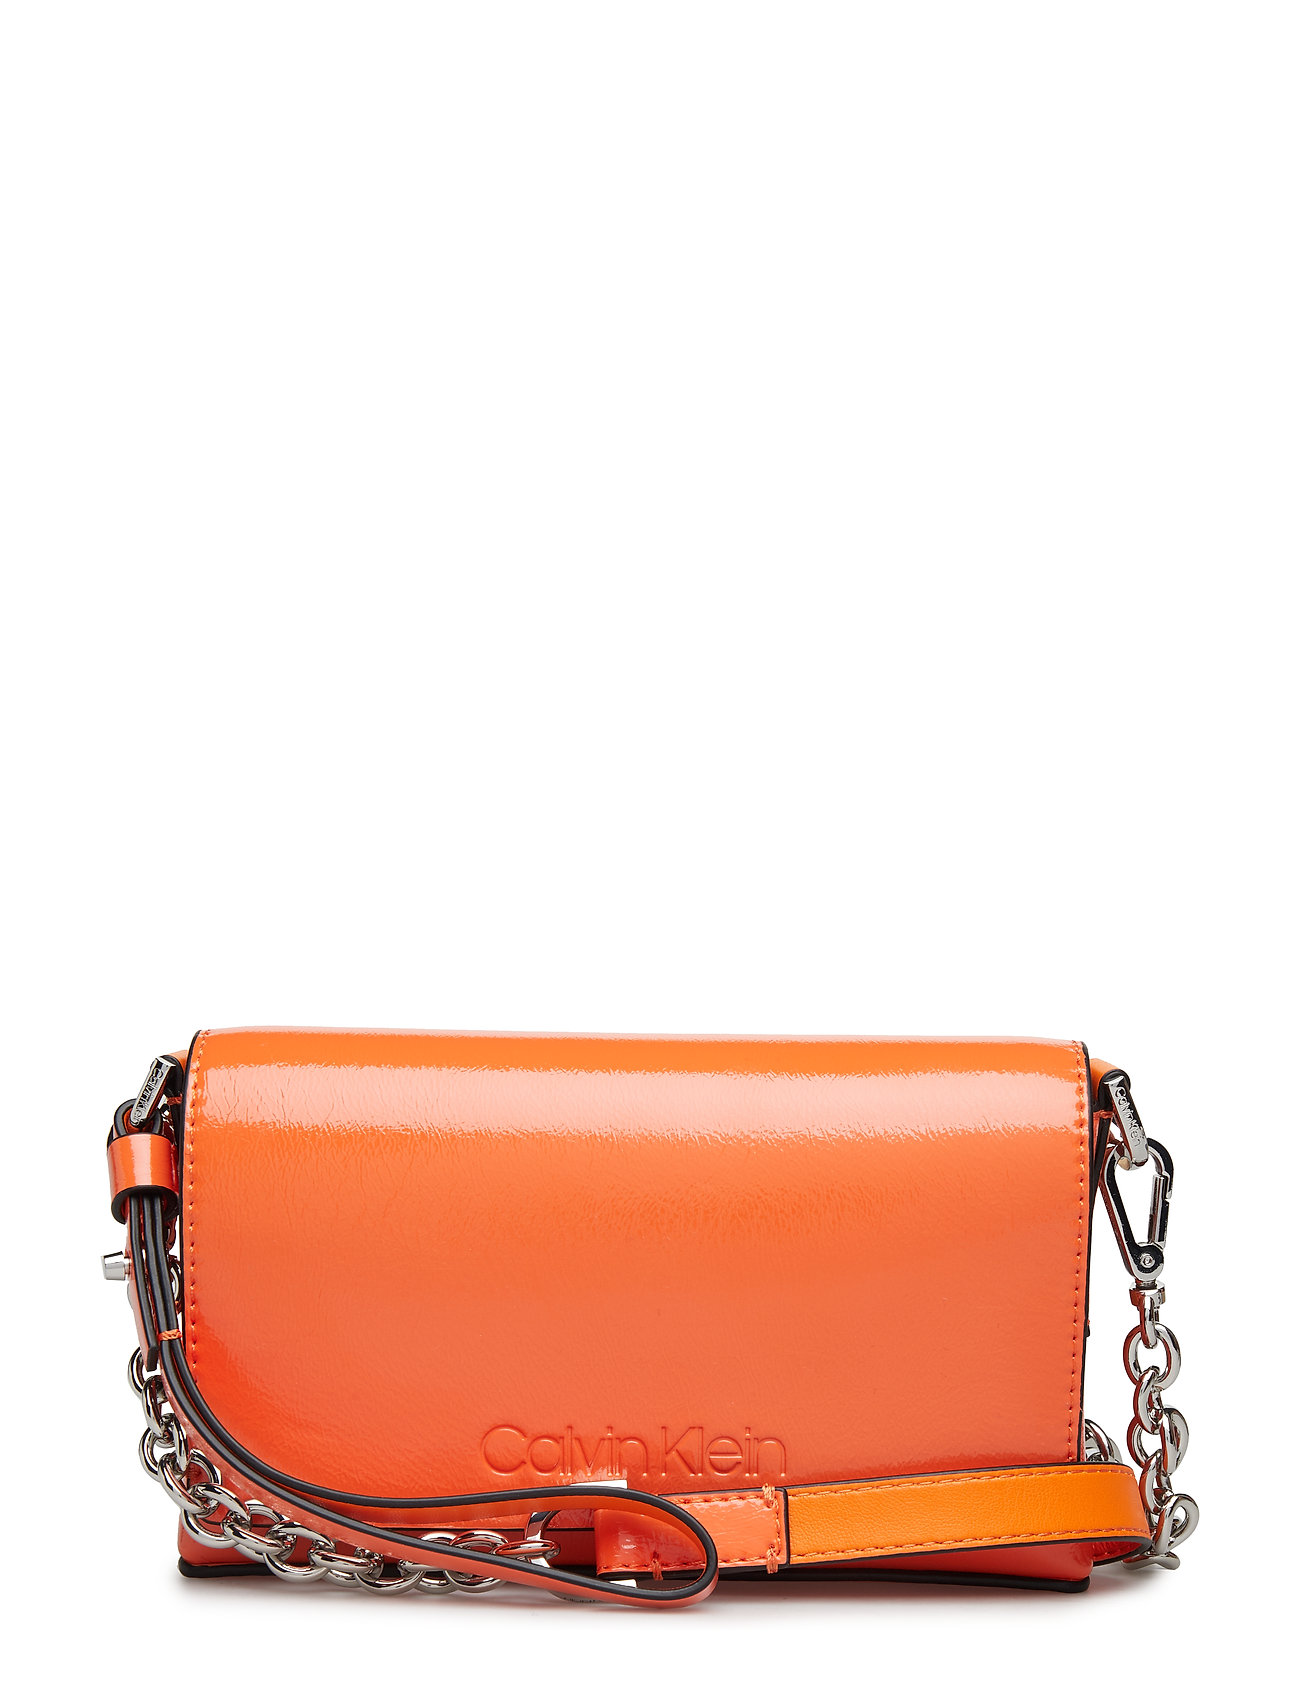 CALVIN KLEIN Dressed Up Pouch On, Bags Small Shoulder Bags/crossbody Bags Orange CALVIN KLEIN